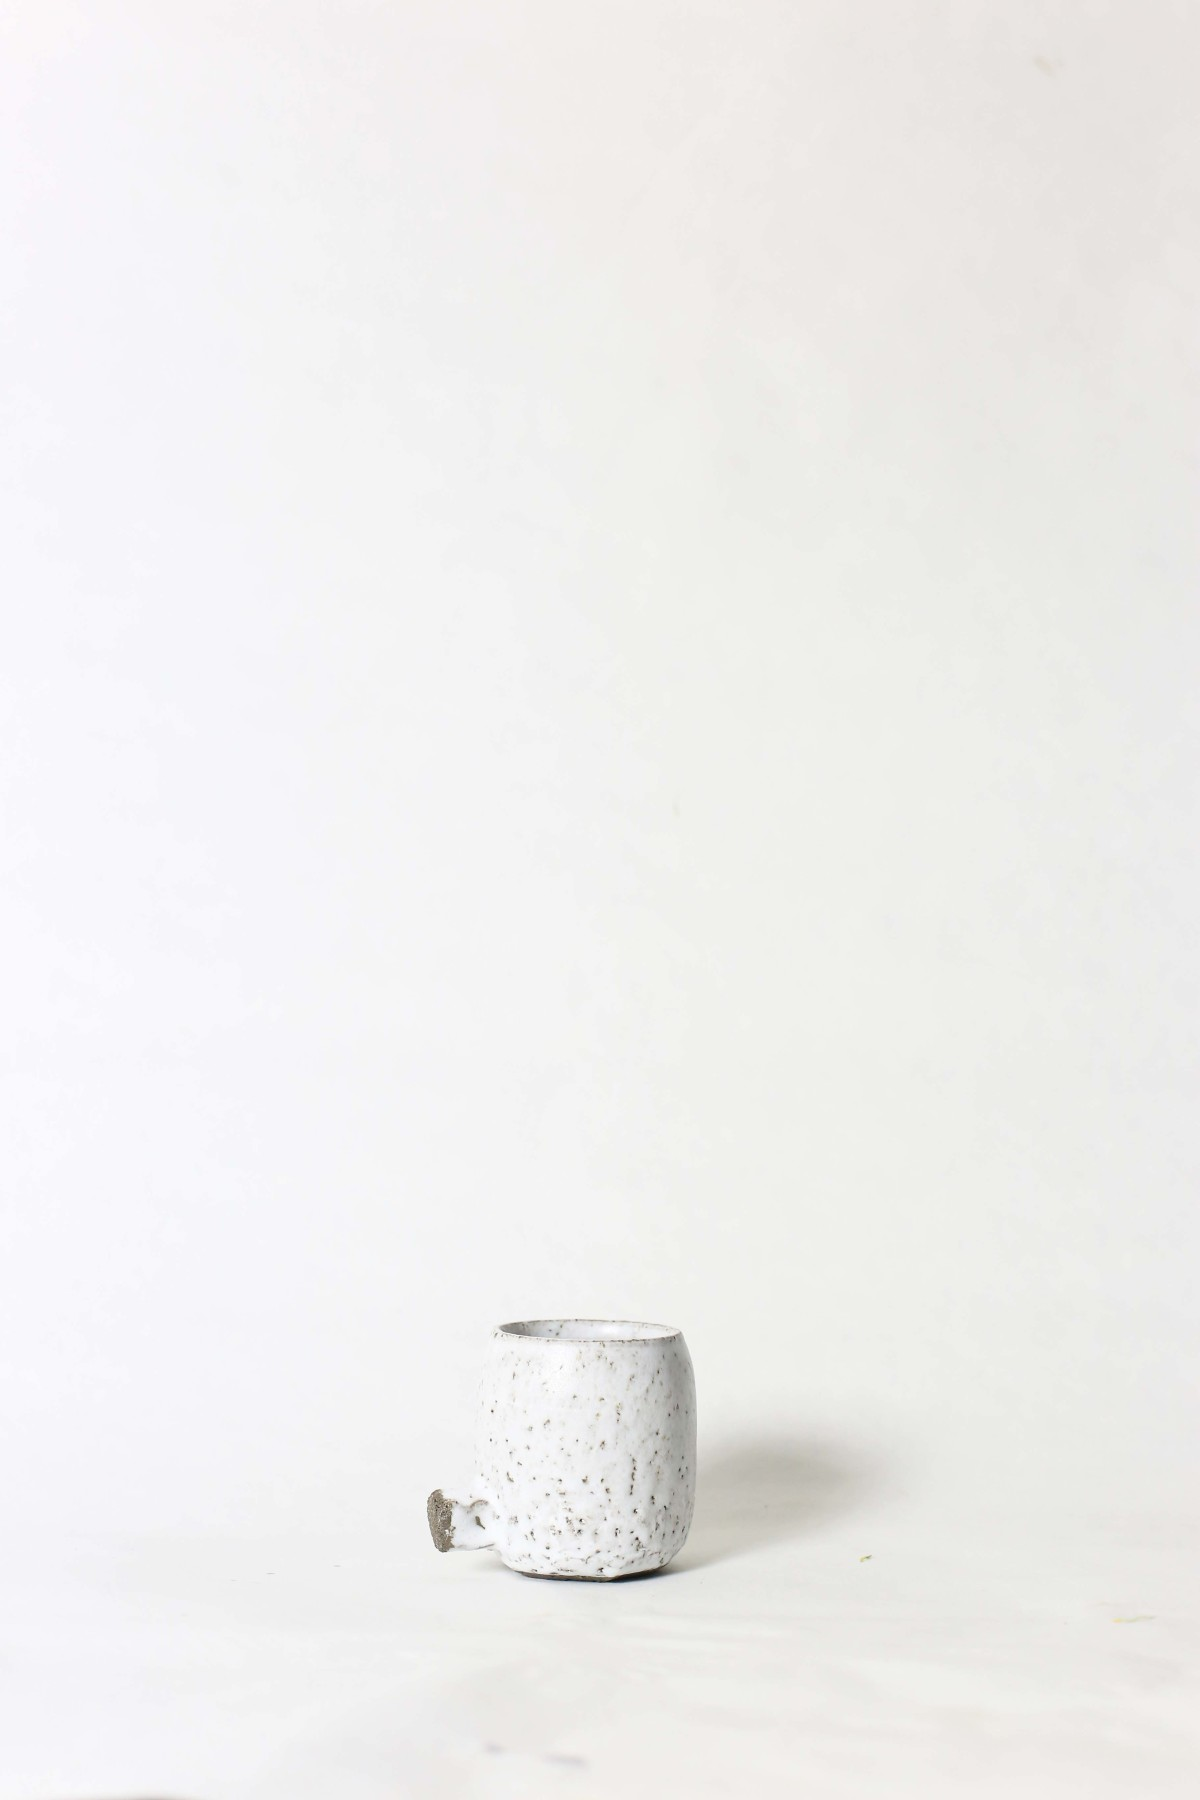 White ceramic cup with knot below on a white background 1